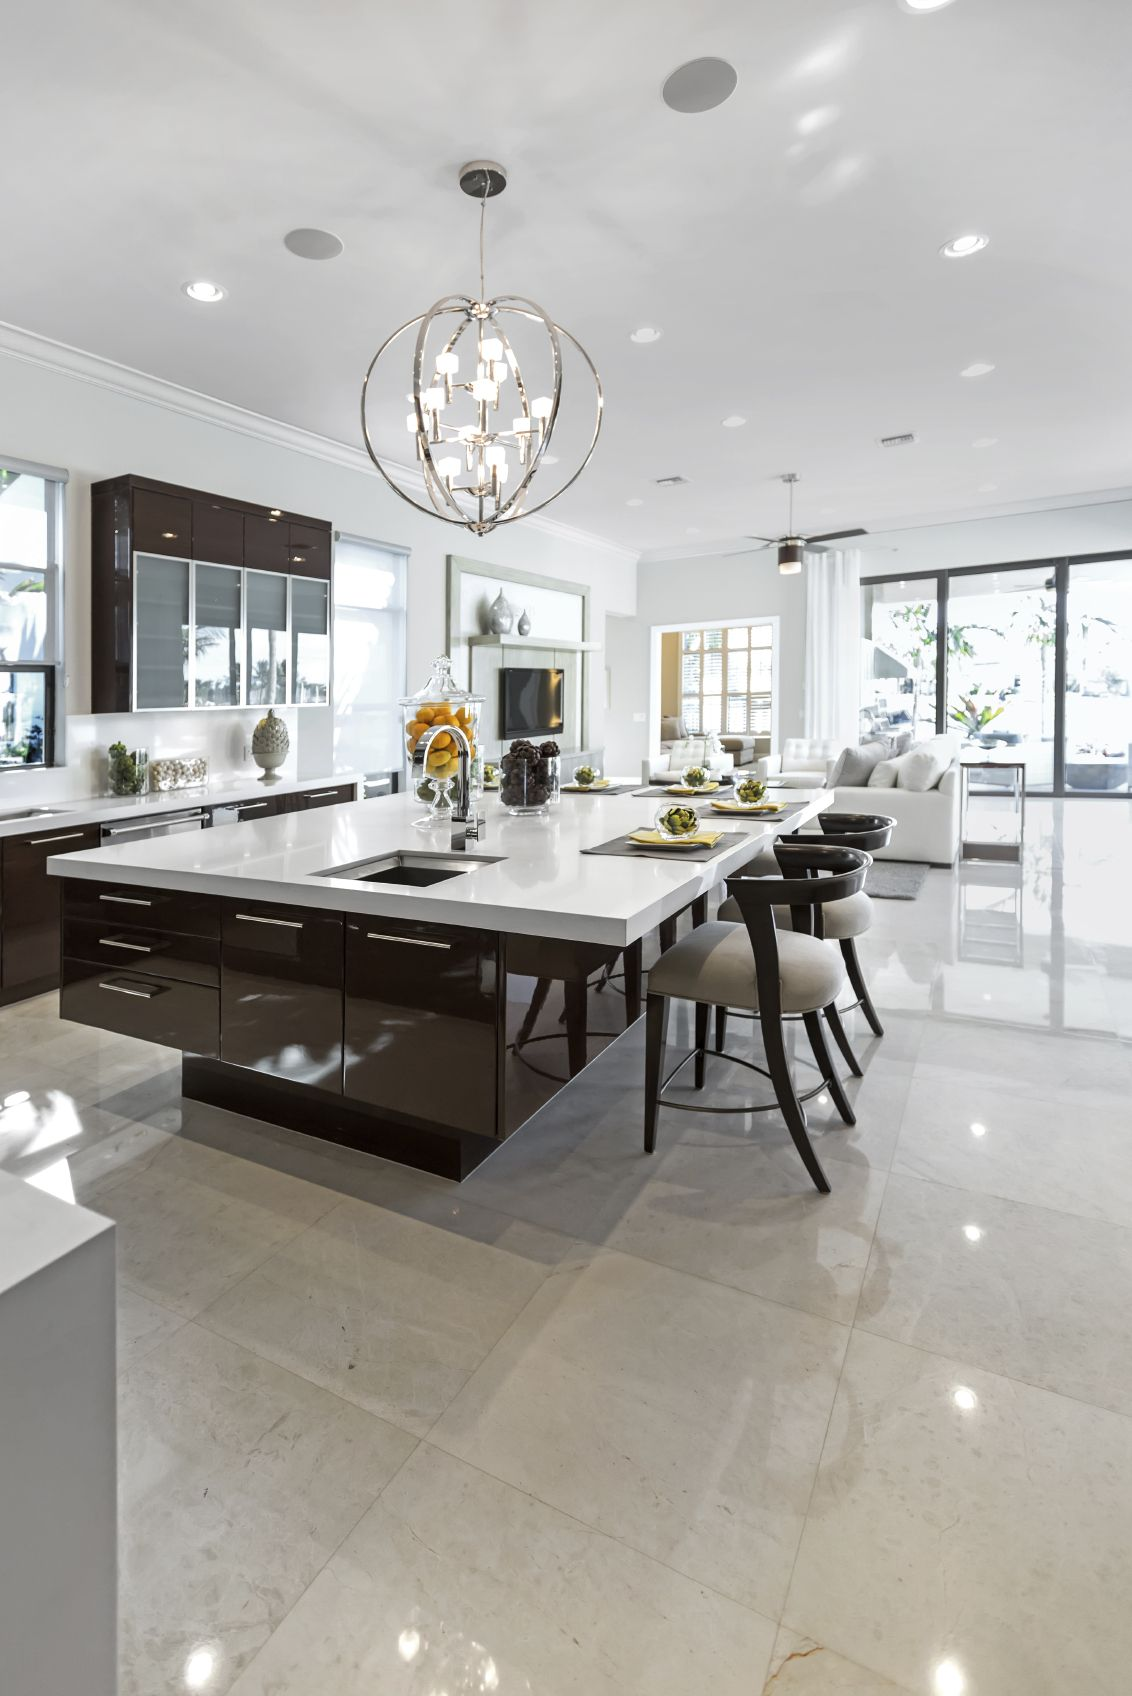 That   all it takes to describe this white modern kitchen with one massive island beautiful also ideas home decoration pinterest rh